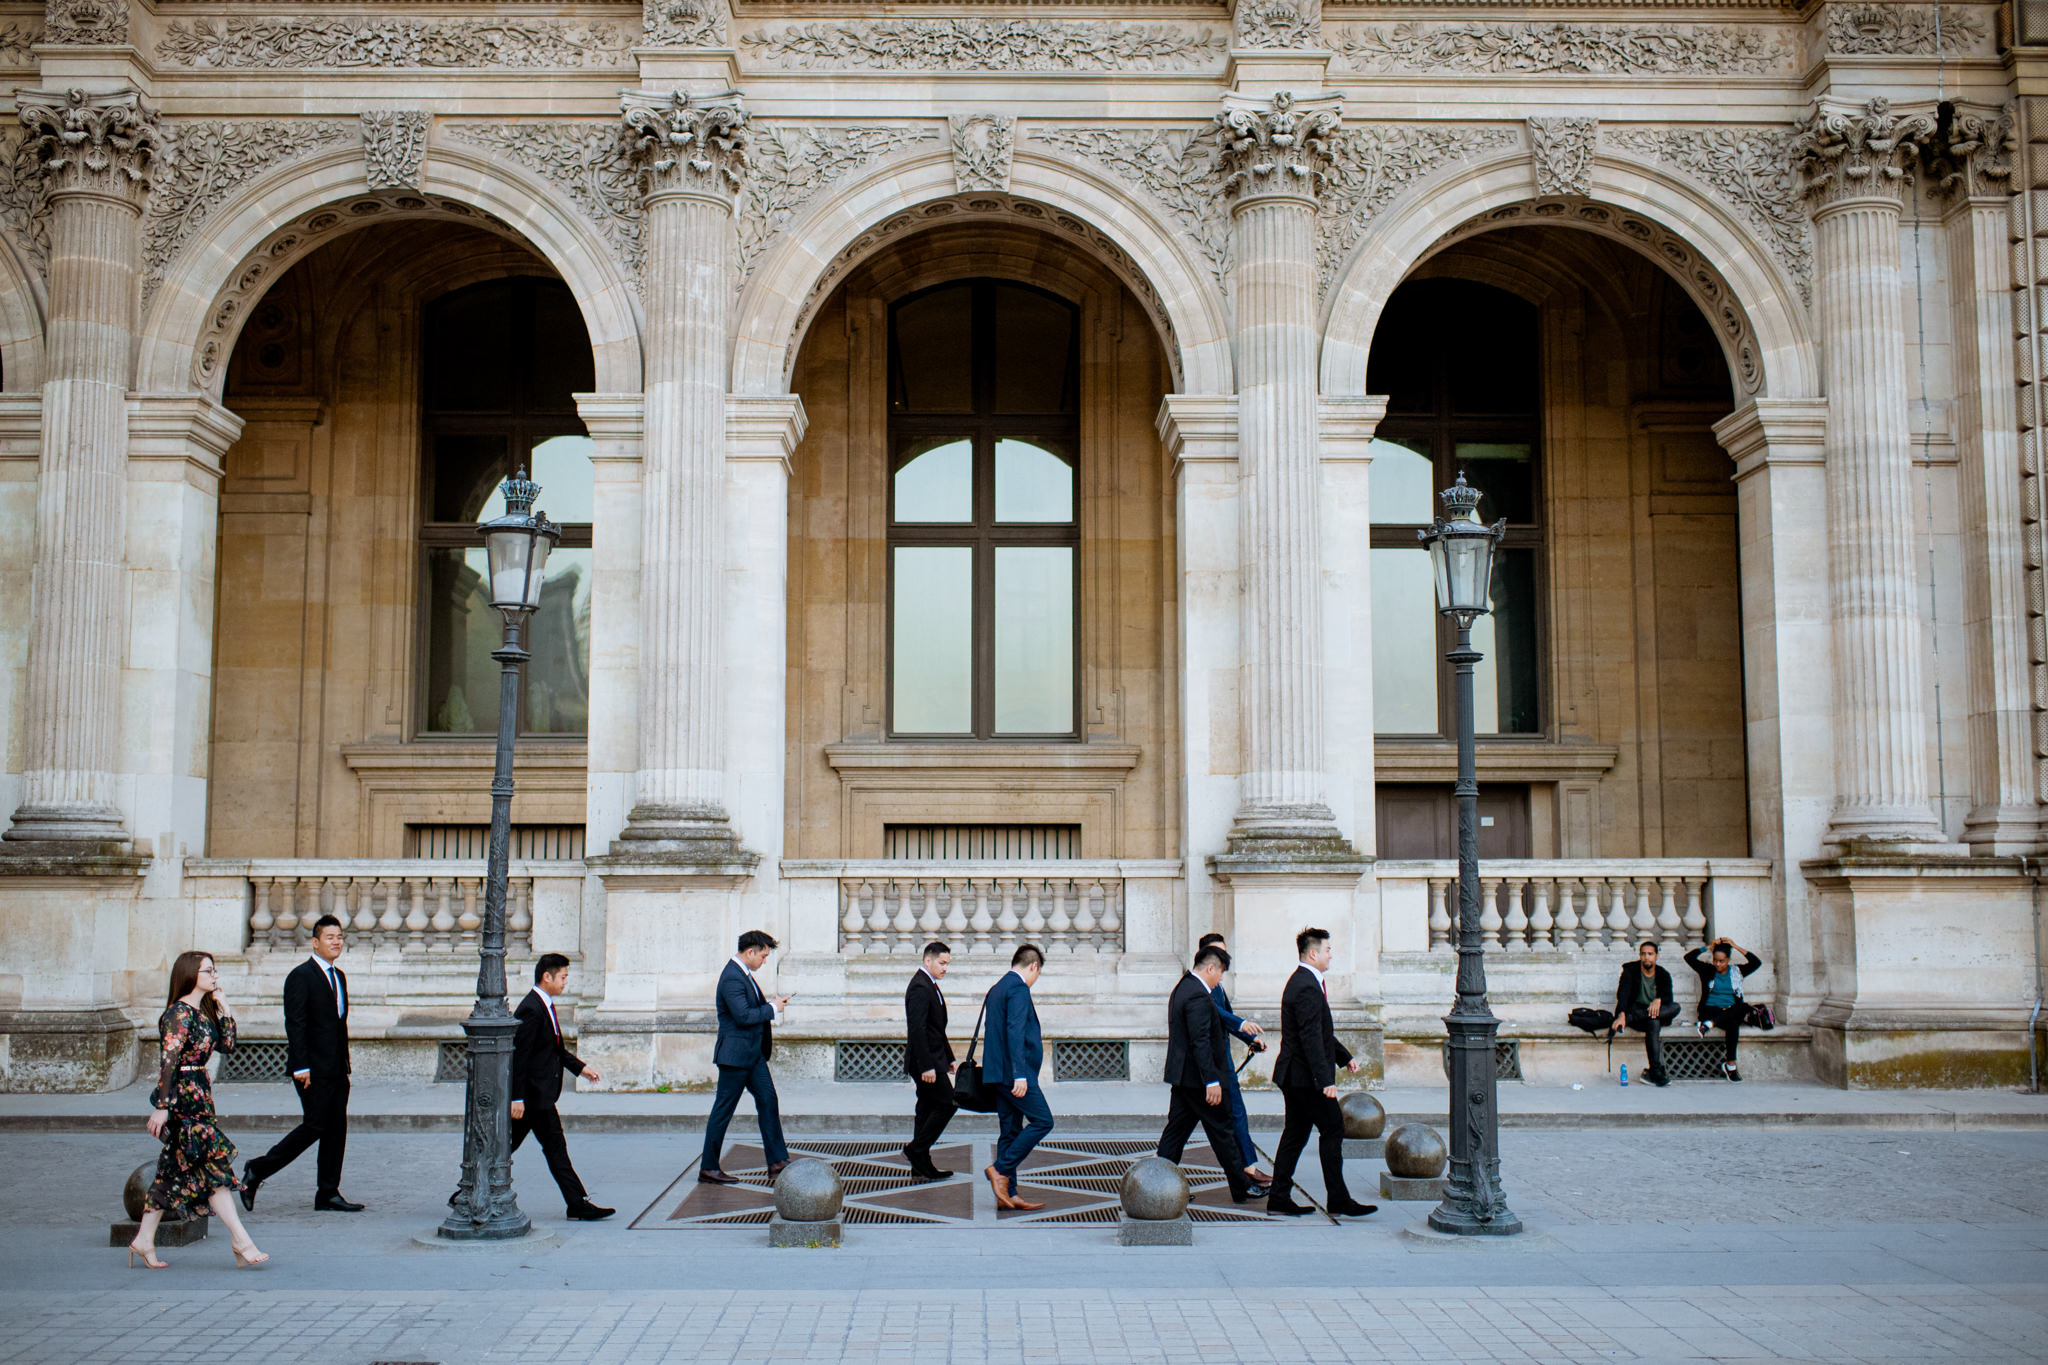 A wedding party walks in front of the Louvre archways.